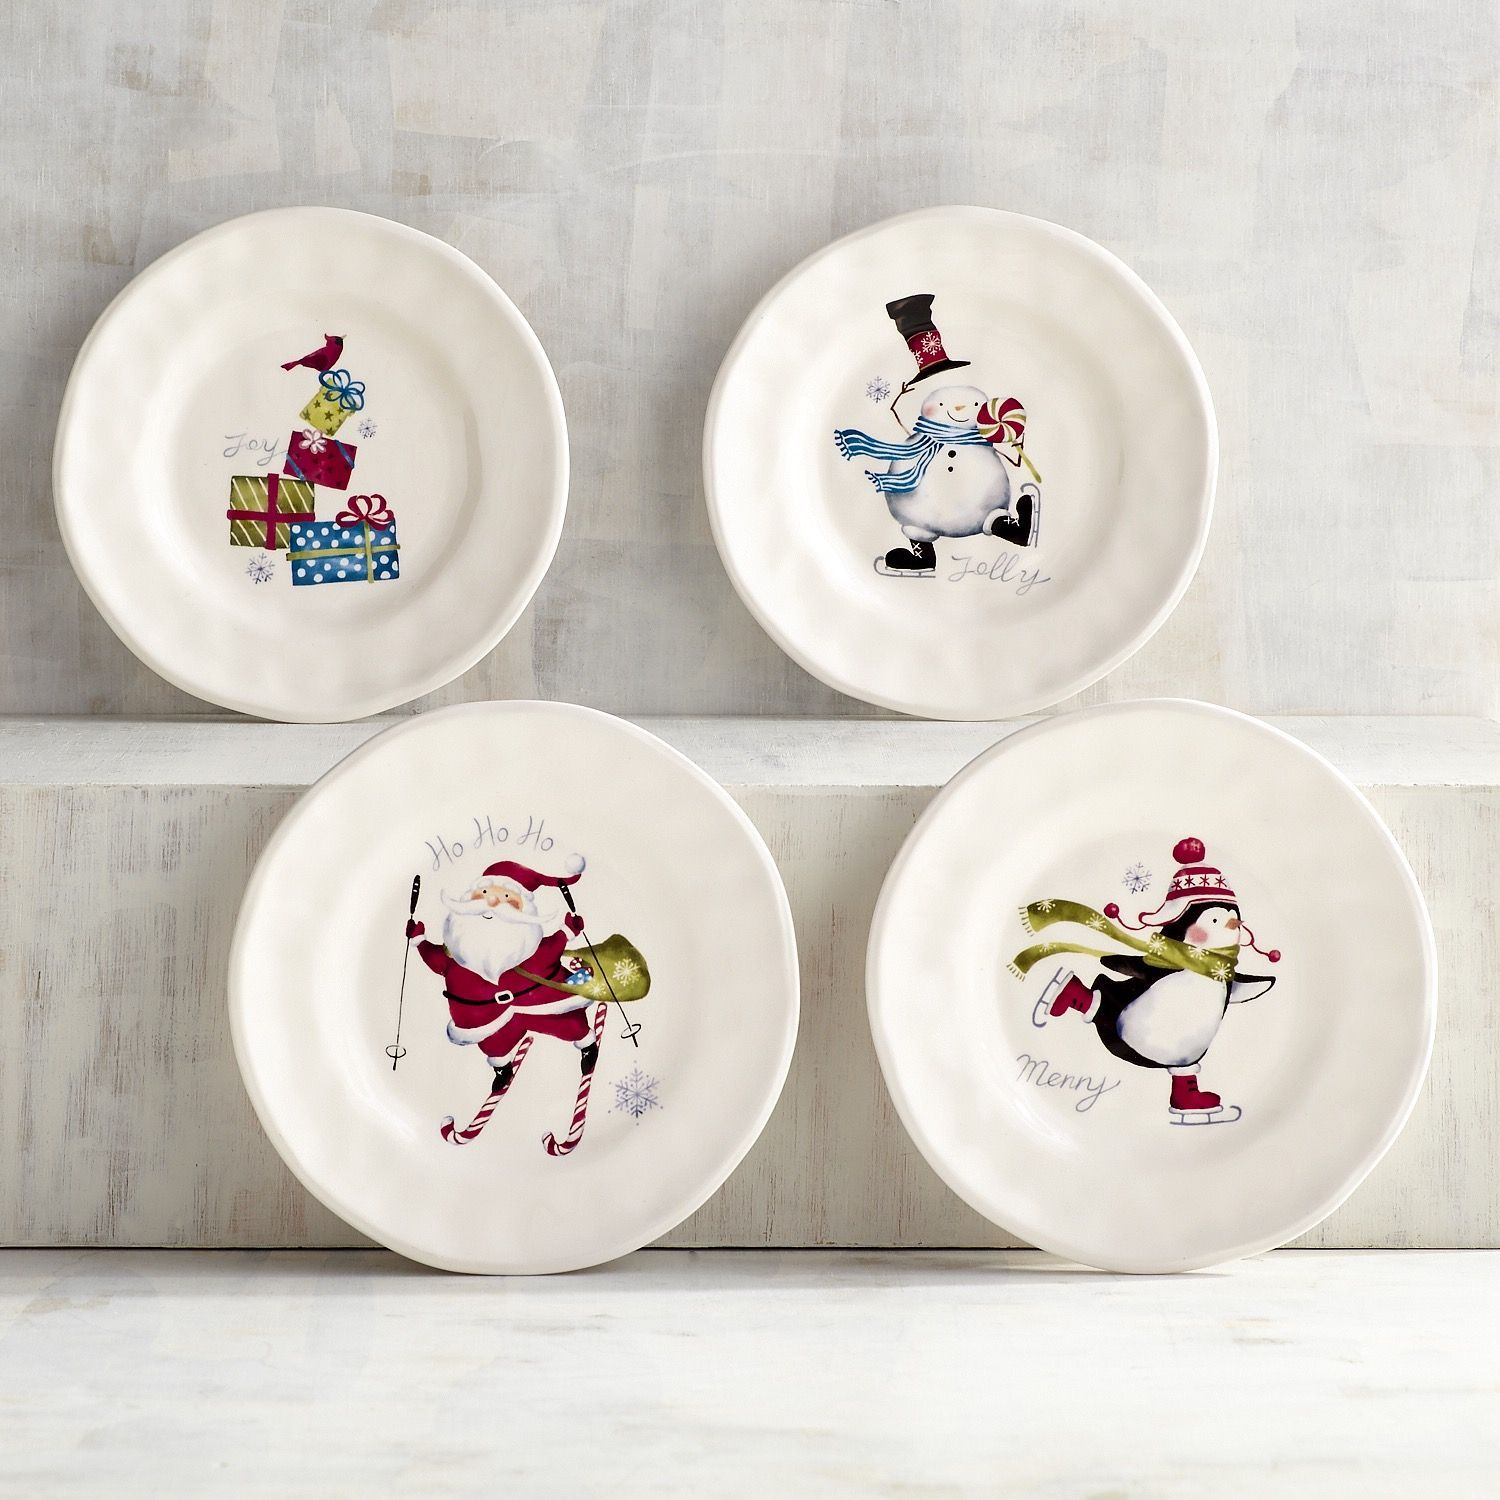 Iconic Christmas Appetizer Plates Set Of 4 & Iconic Christmas Appetizer Plates Set Of 4 | Christmas appetizers ...